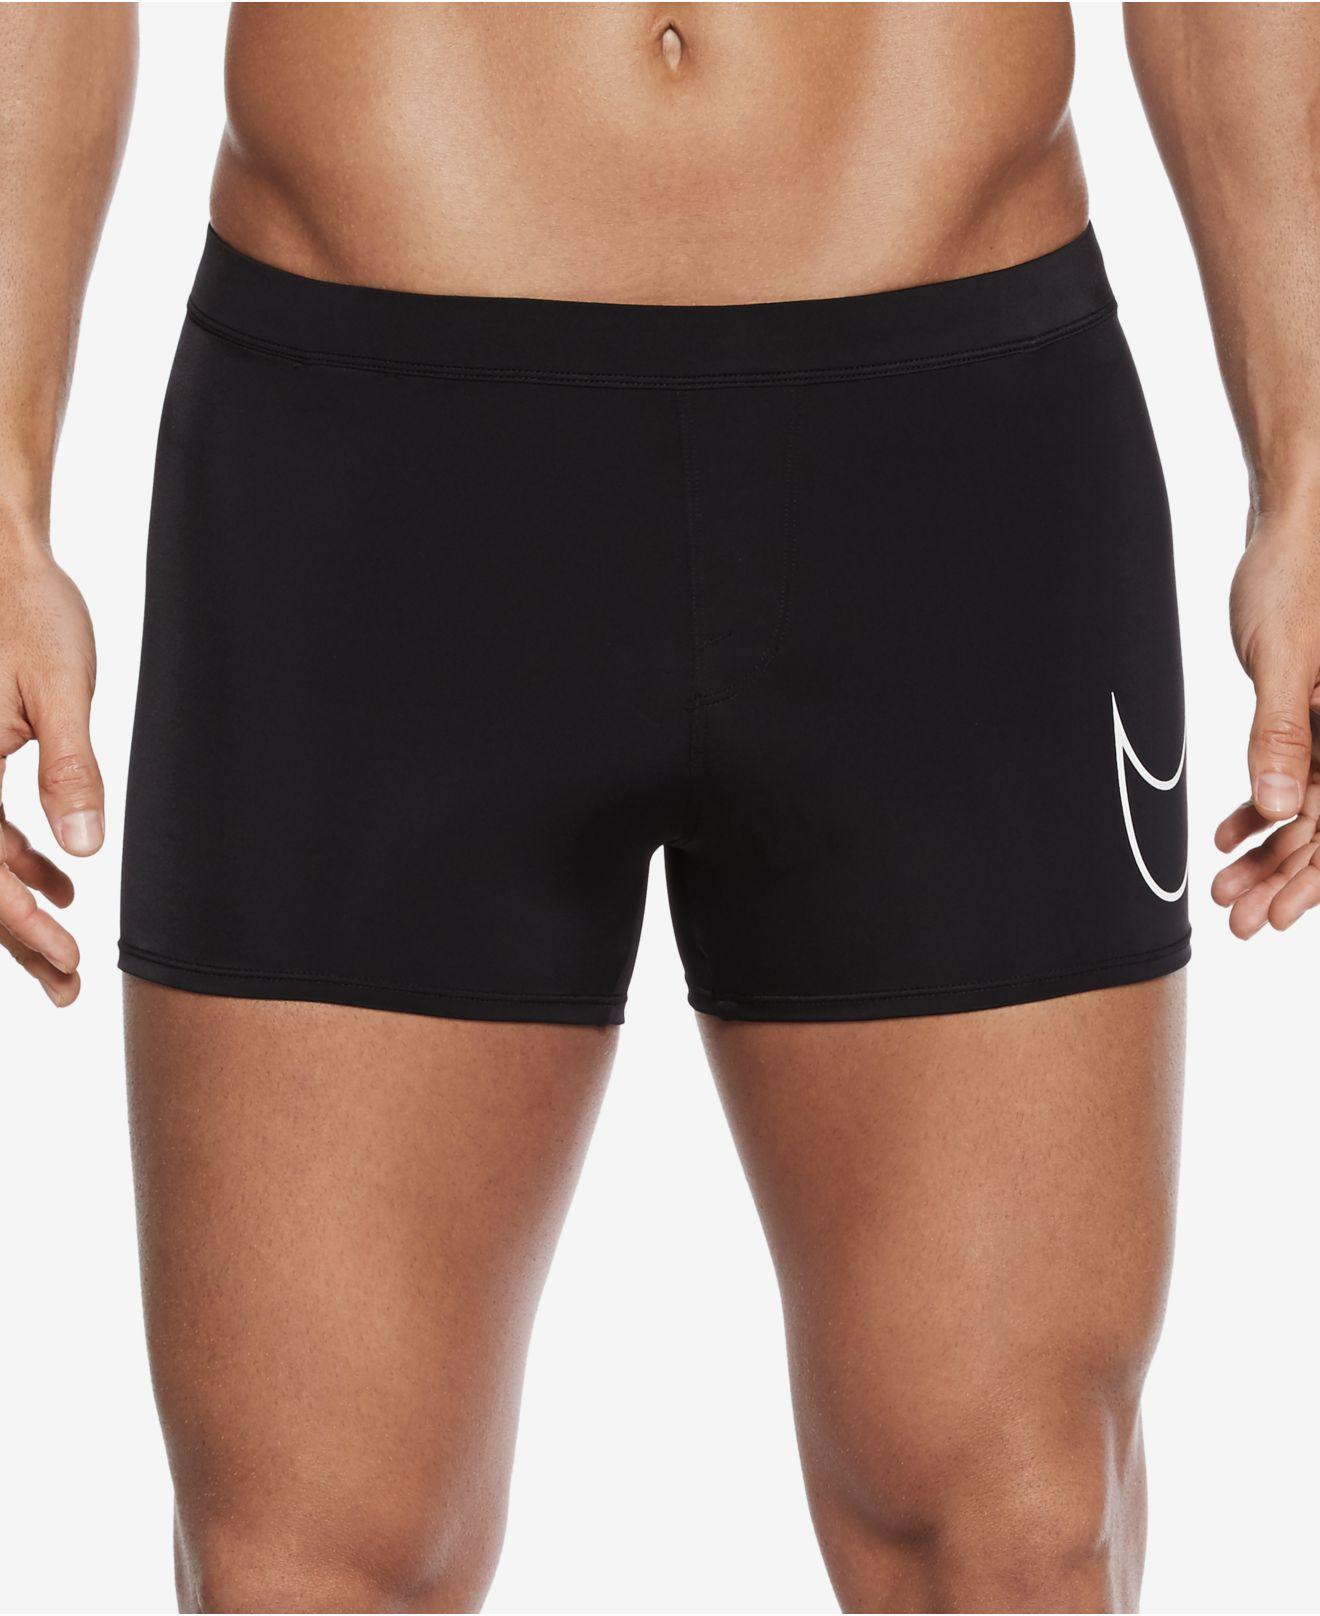 Lyst - Nike Men's Yield Metro Short Swim Trunks in Black for Men